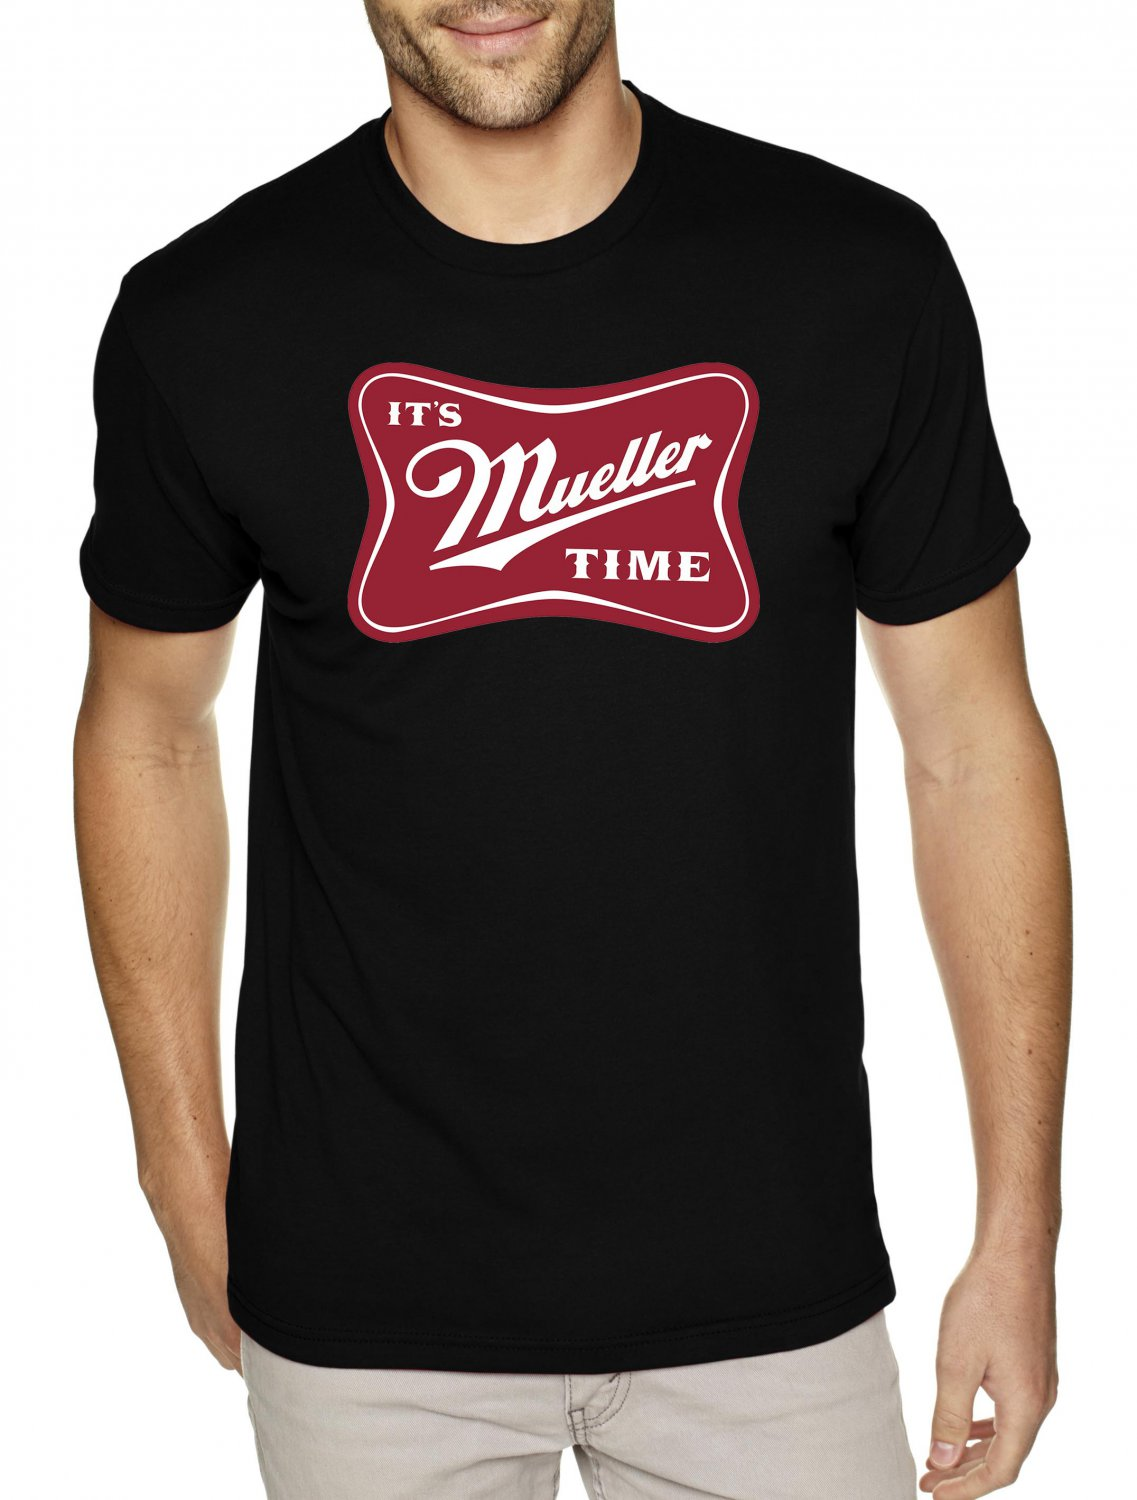 IT'S MUELLER TIME shirt - Premium Sueded Shirt SIZE 2XL